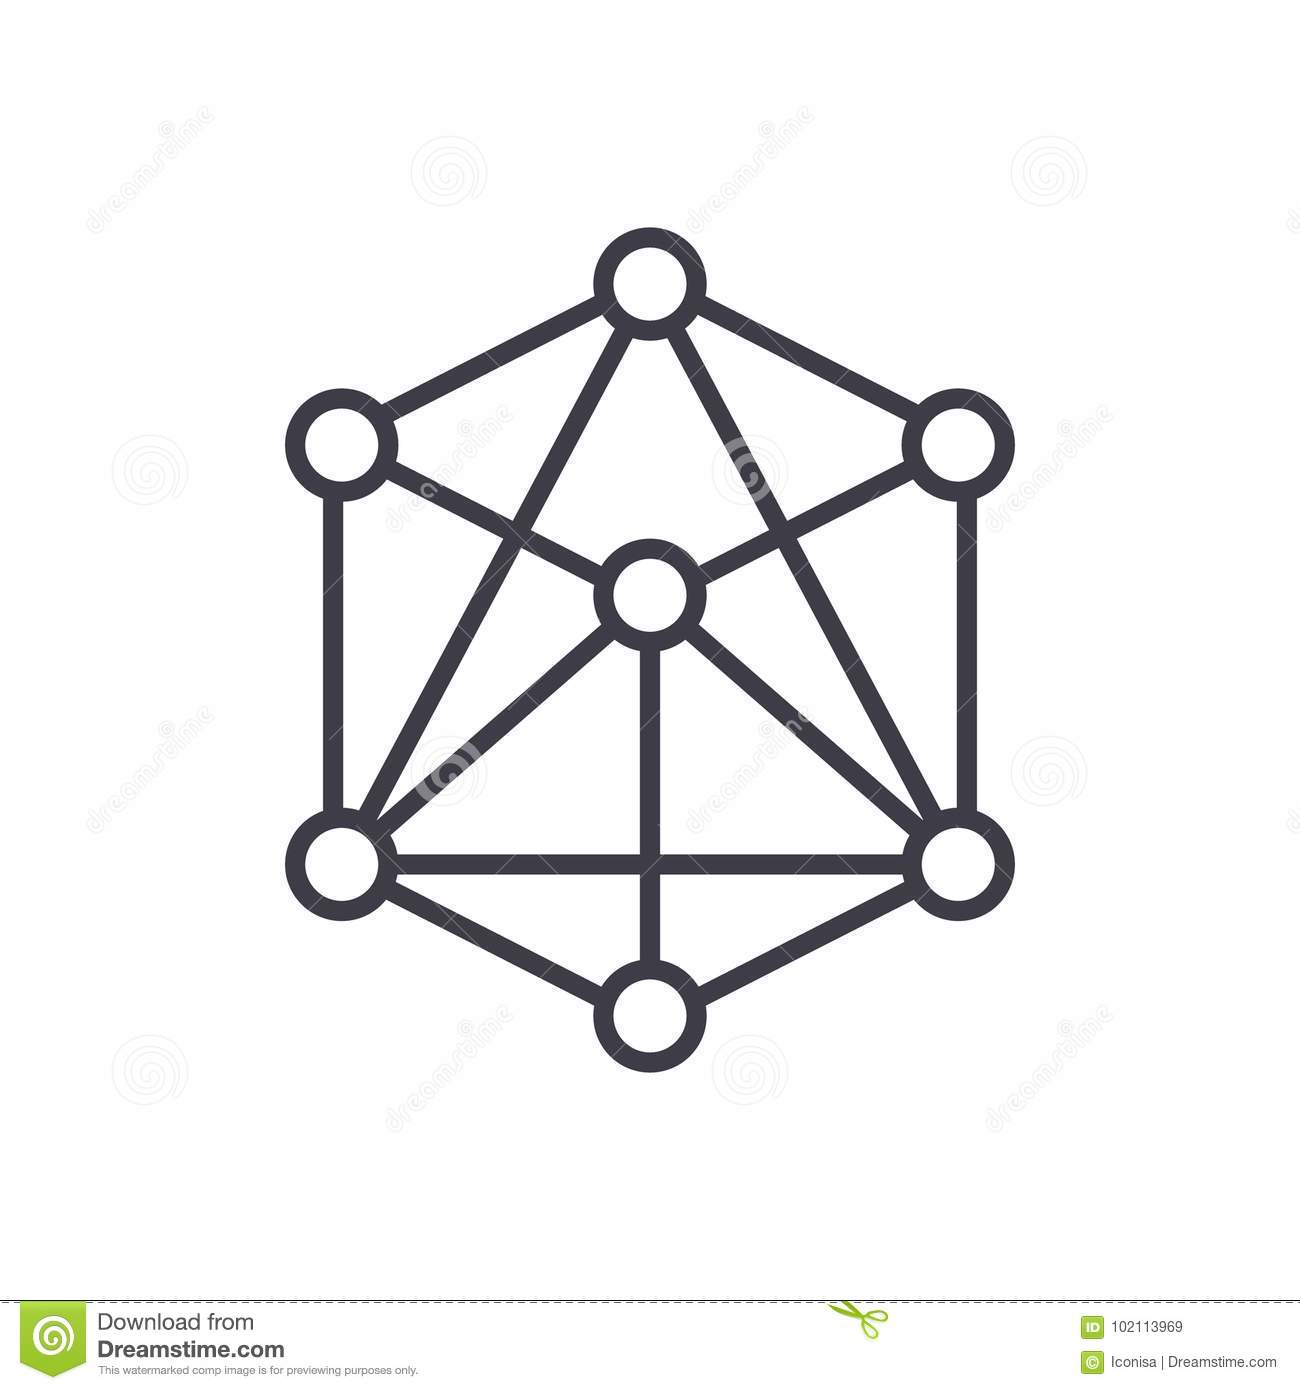 Blue Metal Molecule Structure Royalty Free Stock Image